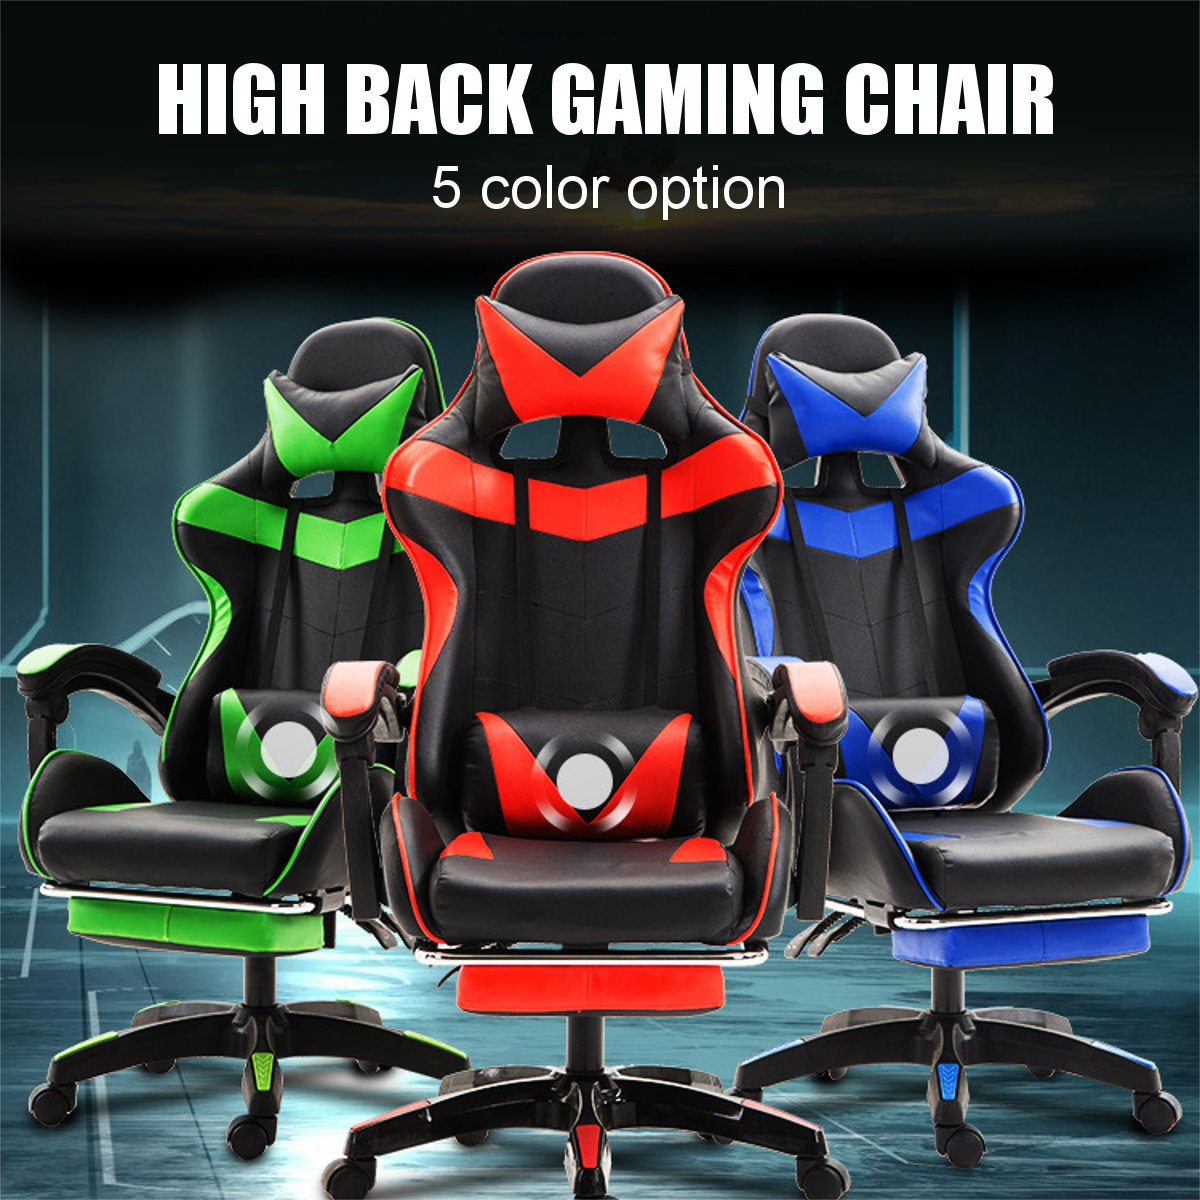 Professional PU Leather Racing Gaming Chair Office High Back Ergonomic Recliner With Footrest Computer Chair Furniture 5 Colors